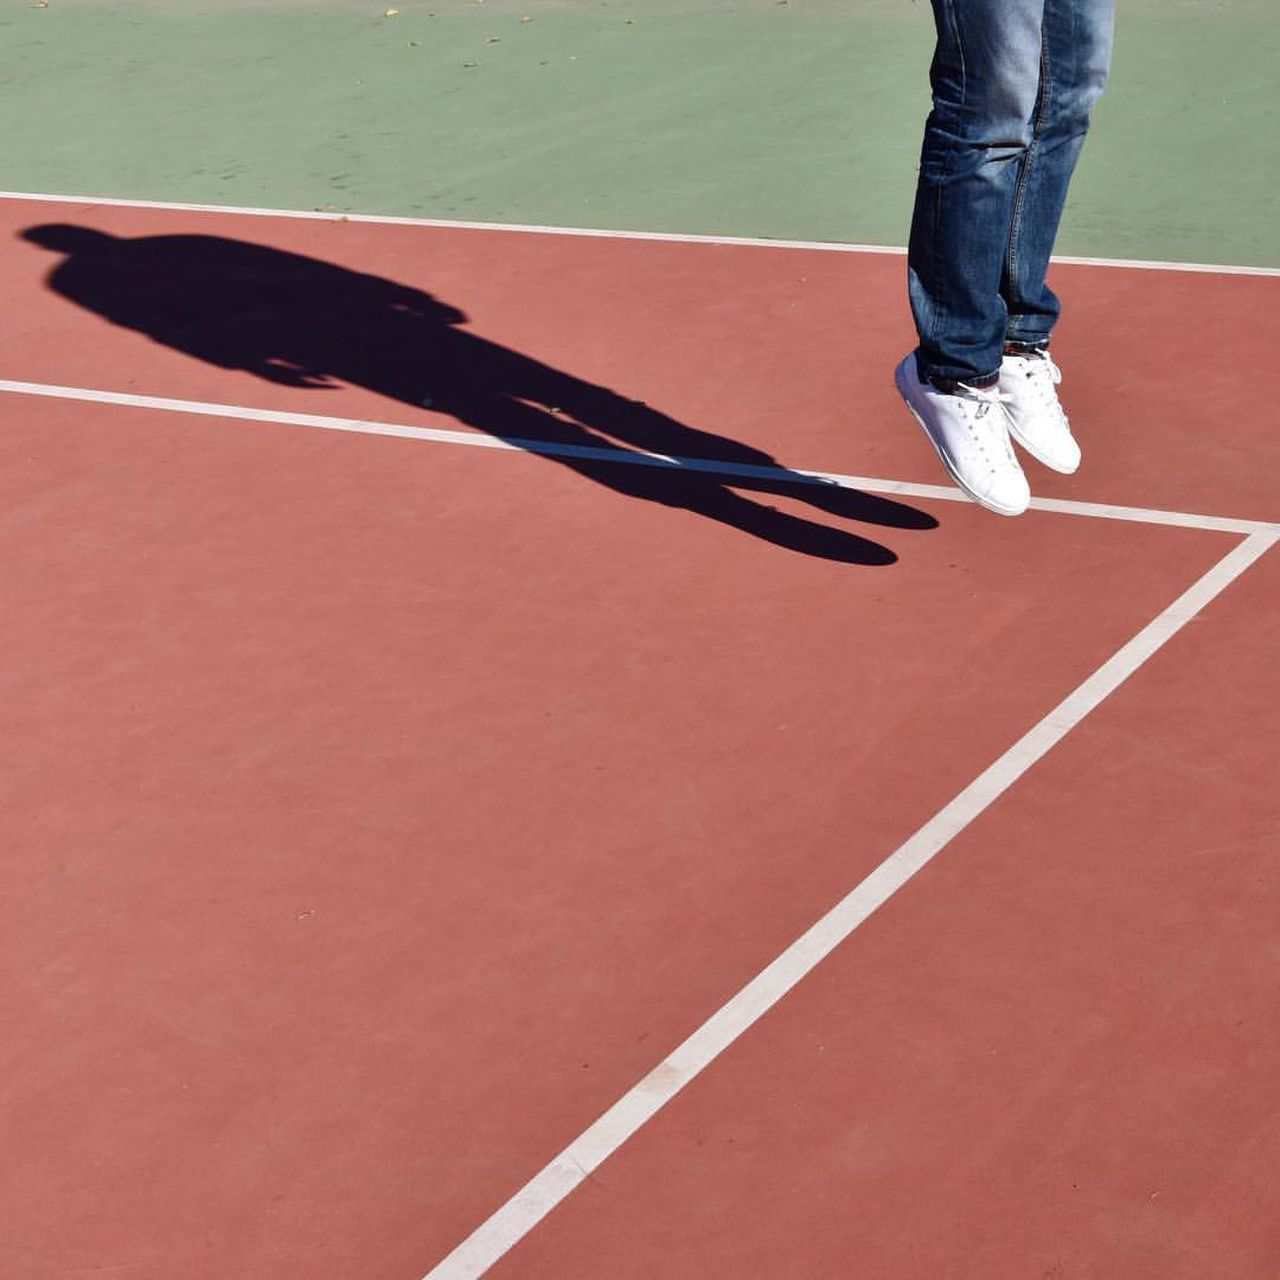 Low Section Of Man Jumping On Tennis Court